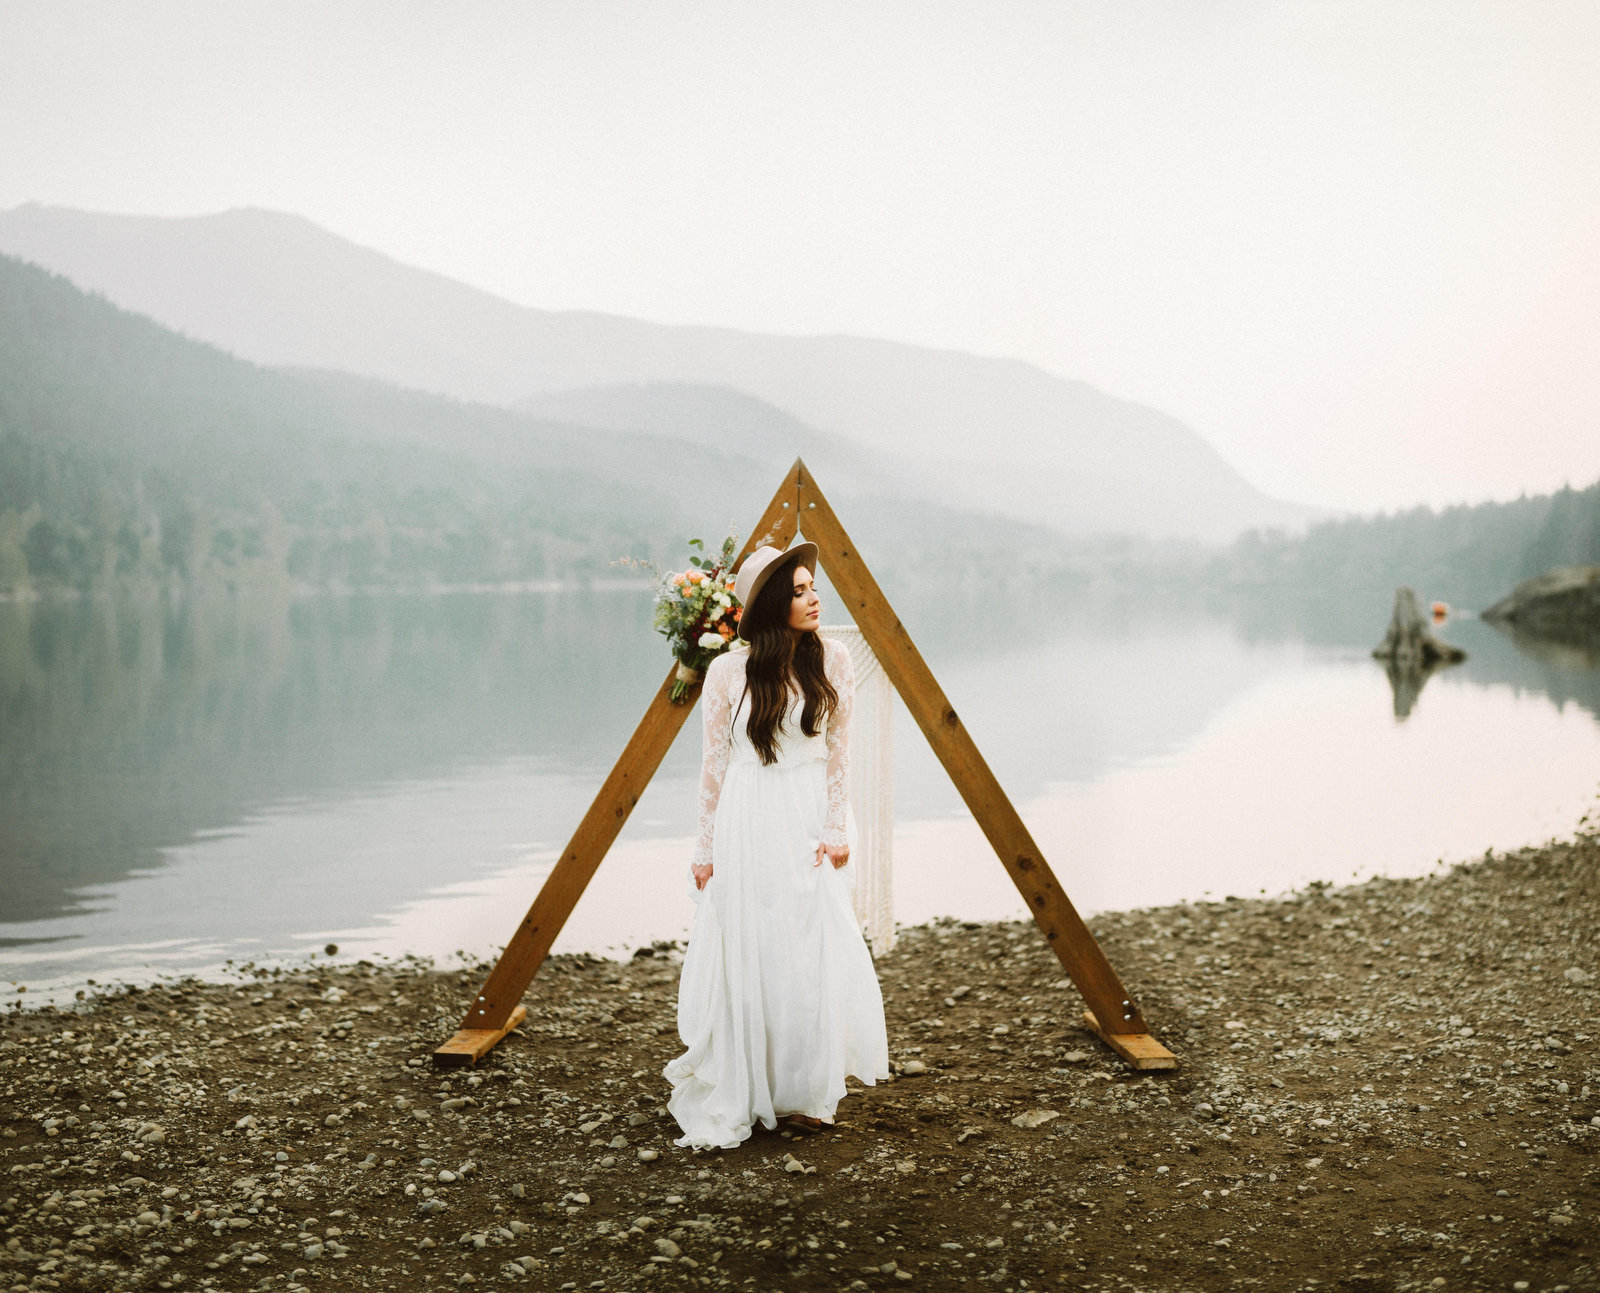 athena-and-camron-seattle-elopement-wedding-benj-haisch-rattlesnake-lake-christian-couple-goals70